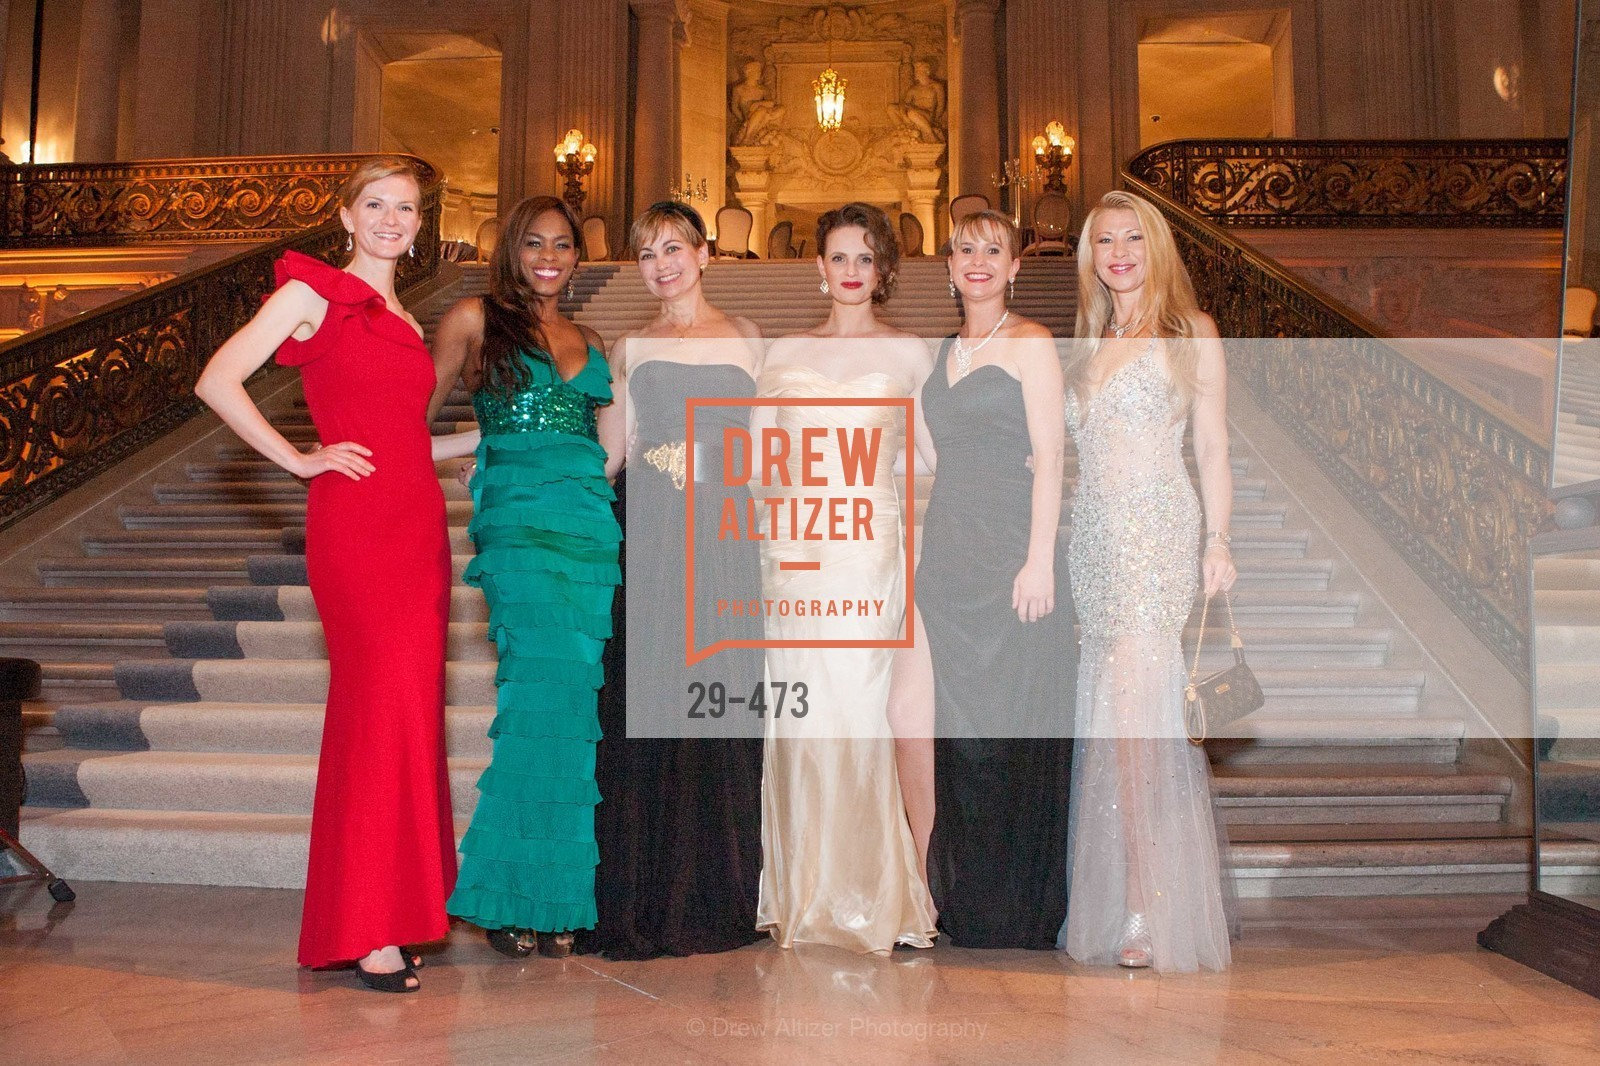 Greer Goings, Vanessa Jean Baptiste, Jane Burkhard, Alyson Blume, Kelly Cramer, Lena Gikkas, ENCORE! at San Francisco BALLET'S 2014 Season Opening Night Gala, US. US, January 22nd, 2014,Drew Altizer, Drew Altizer Photography, full-service agency, private events, San Francisco photographer, photographer california